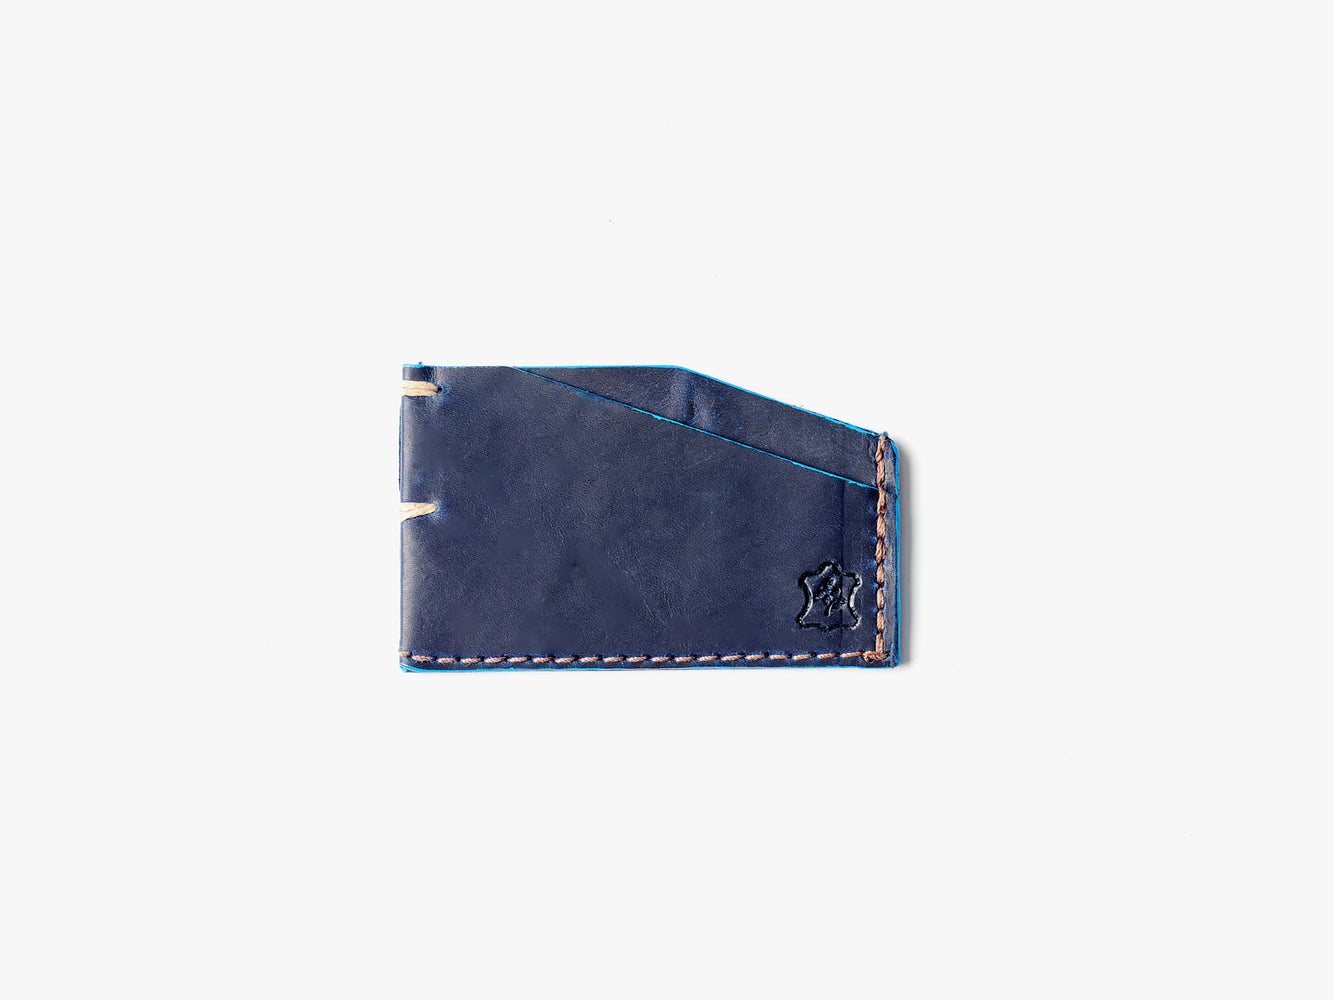 Orox Leather Co. Slim Cardholder - Sapphire - top-down view of cardholder on a white surface